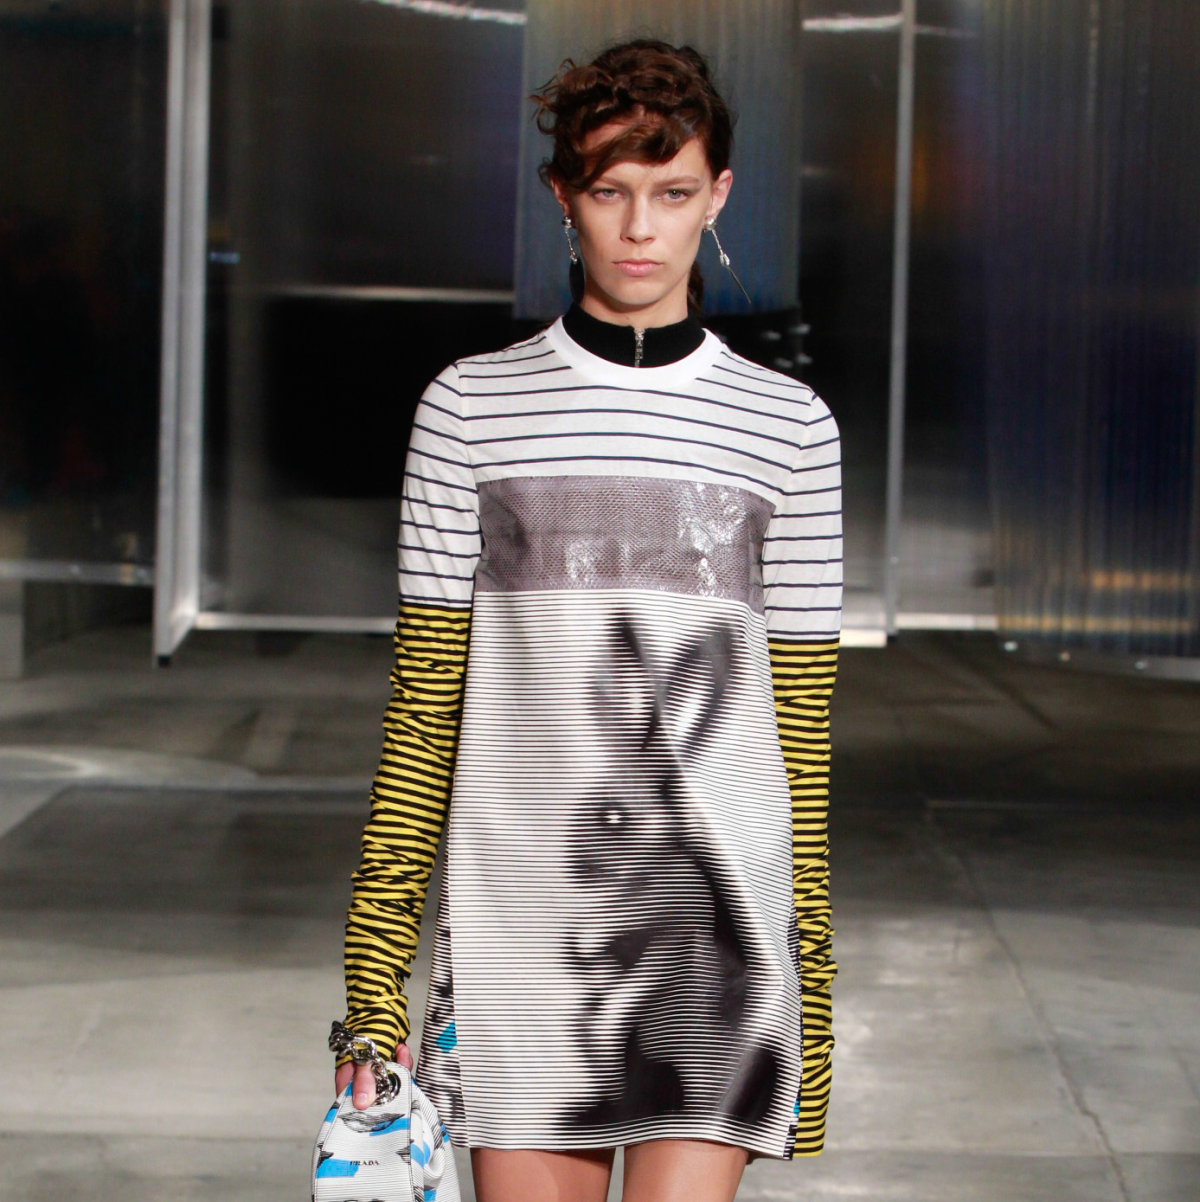 Prada men's ready to wear spring 2016 women's look